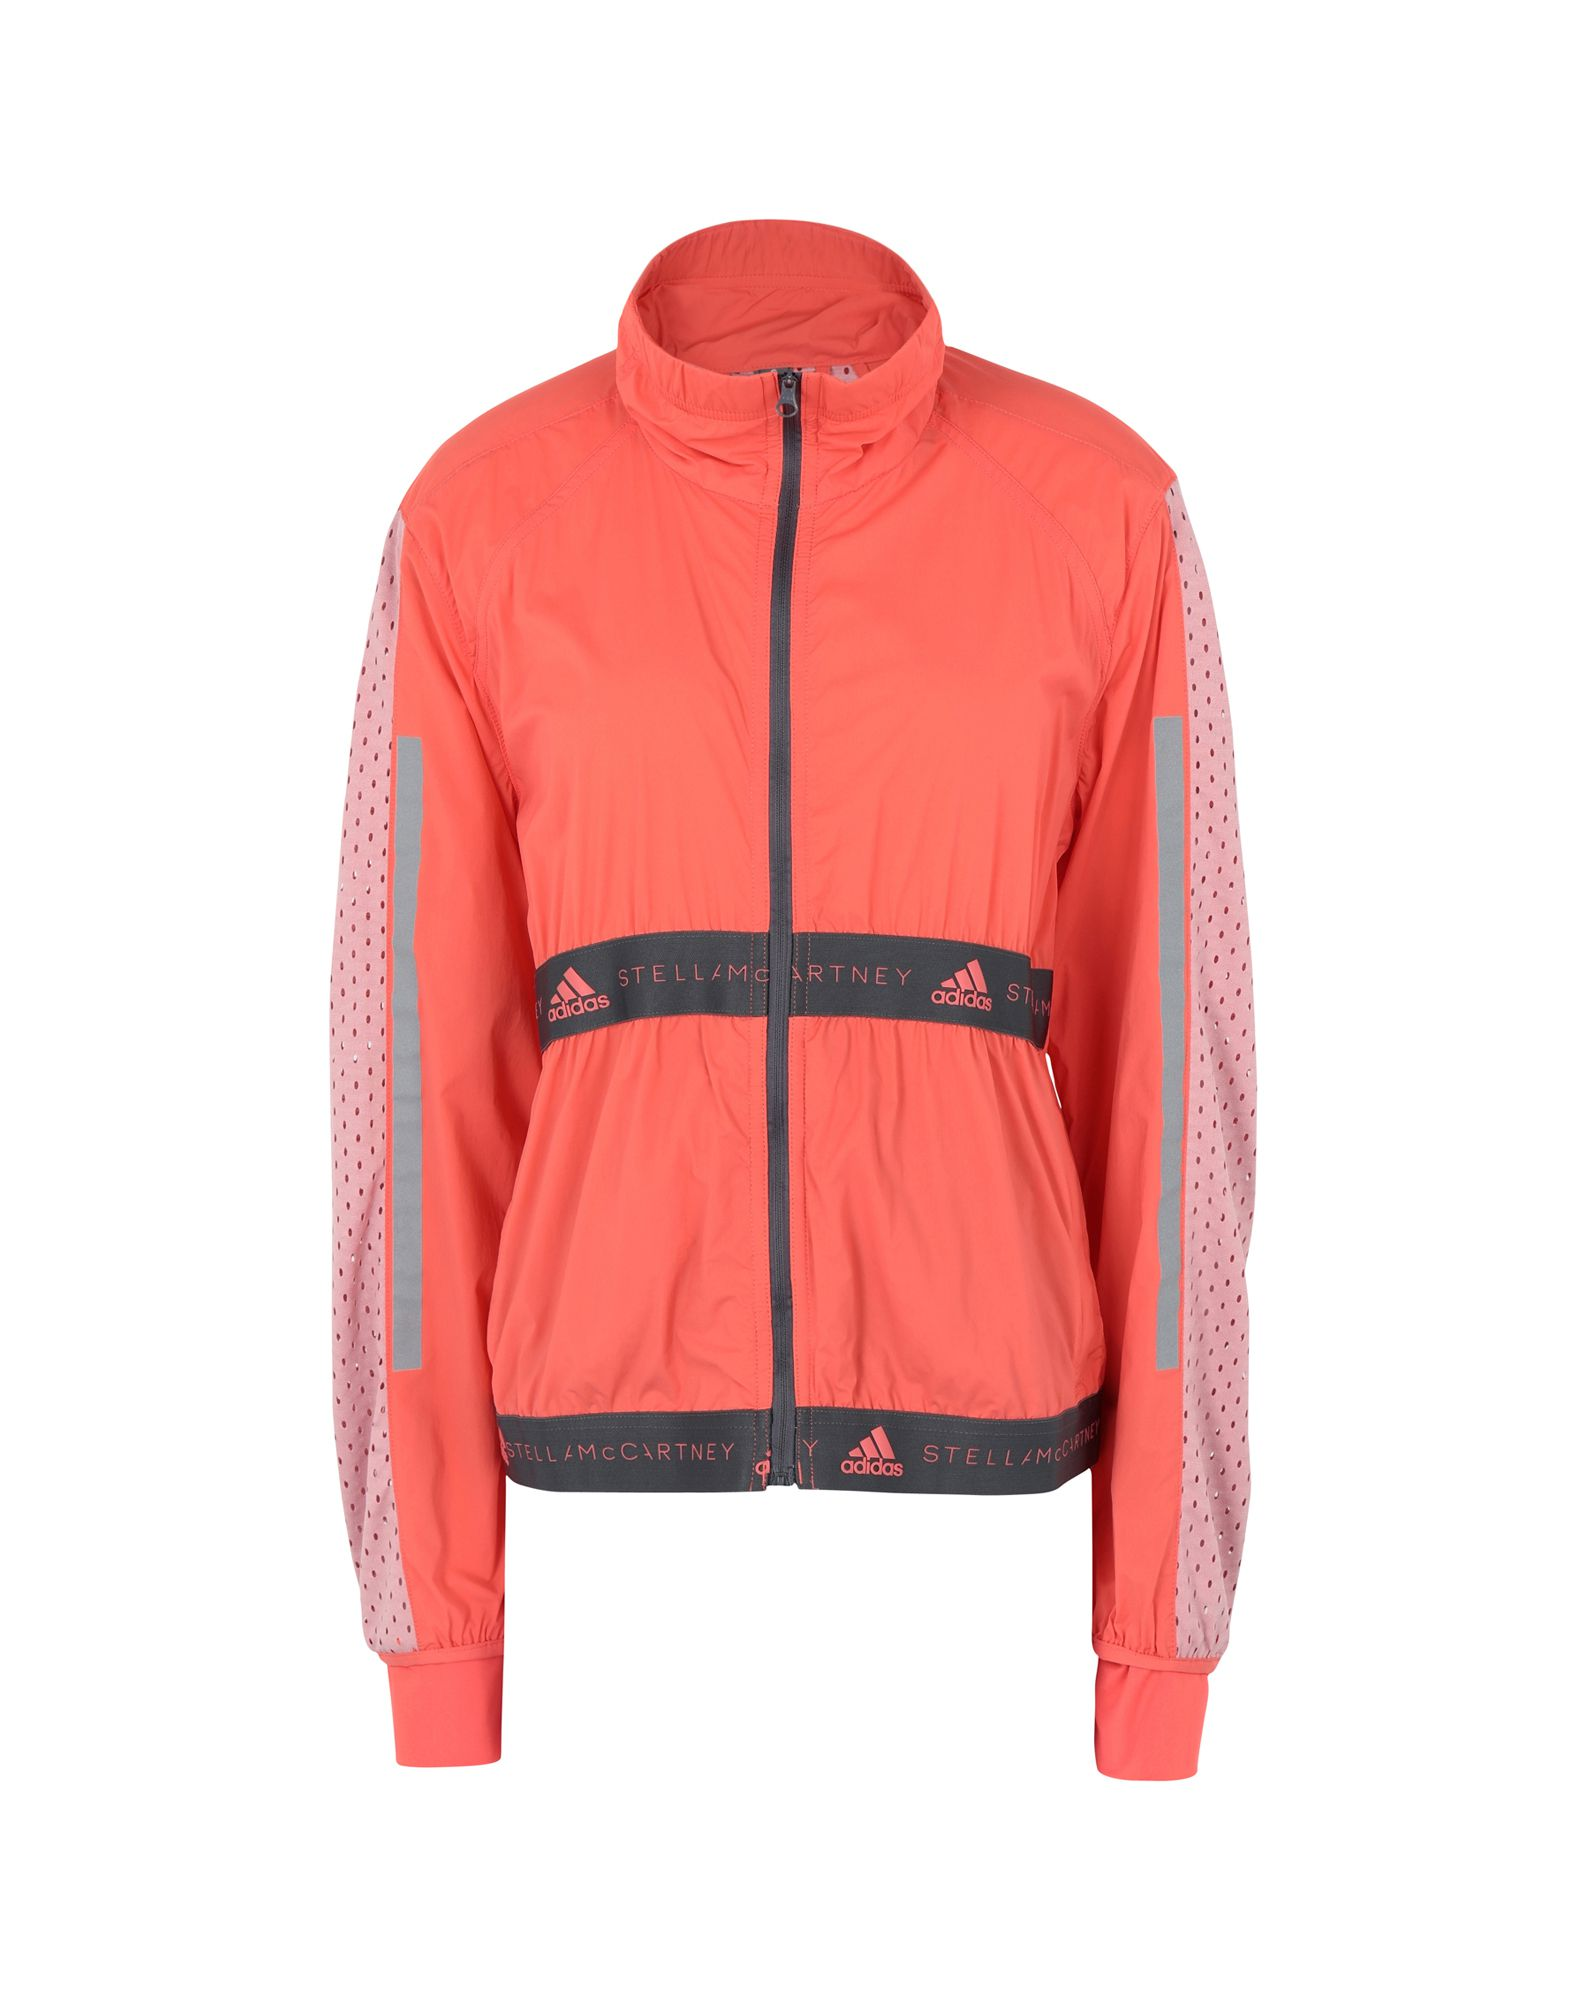 0e5c4f24b78c Women s Technical Outerwear And Vests - Spring-Summer and Fall-Winter  Collections - YOOX United States